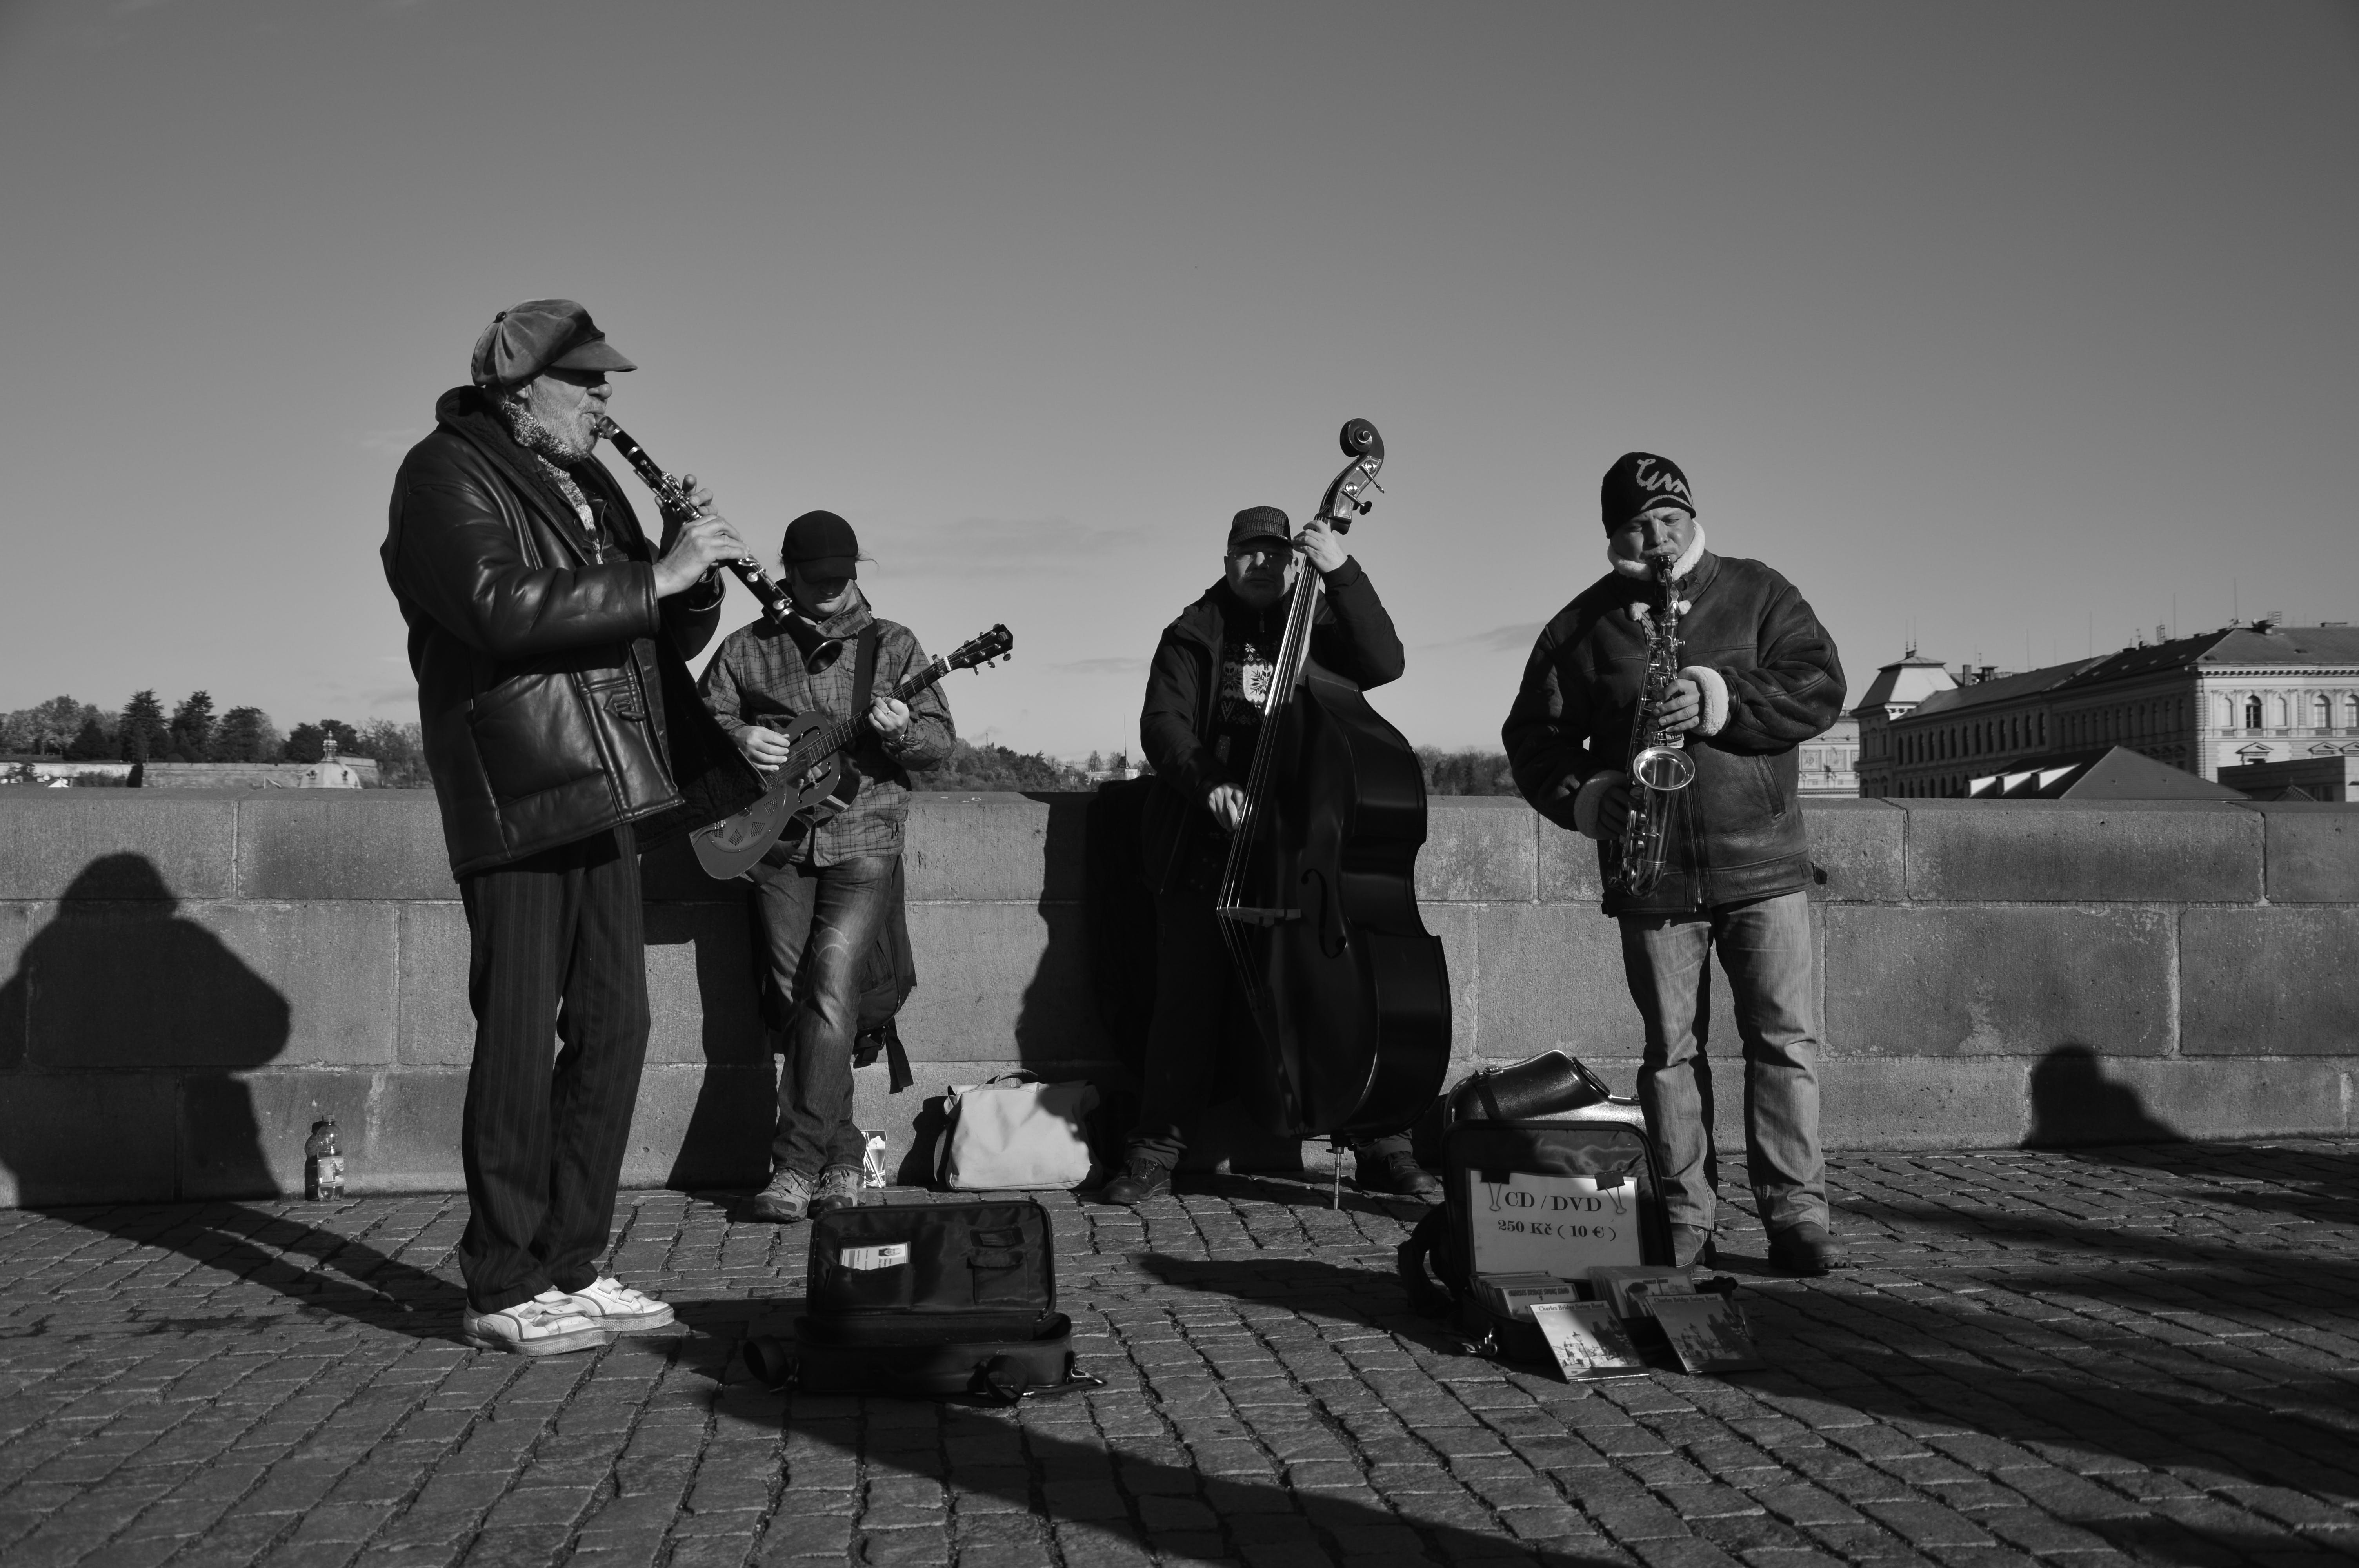 Grayscale Photo of People Playing Instruments